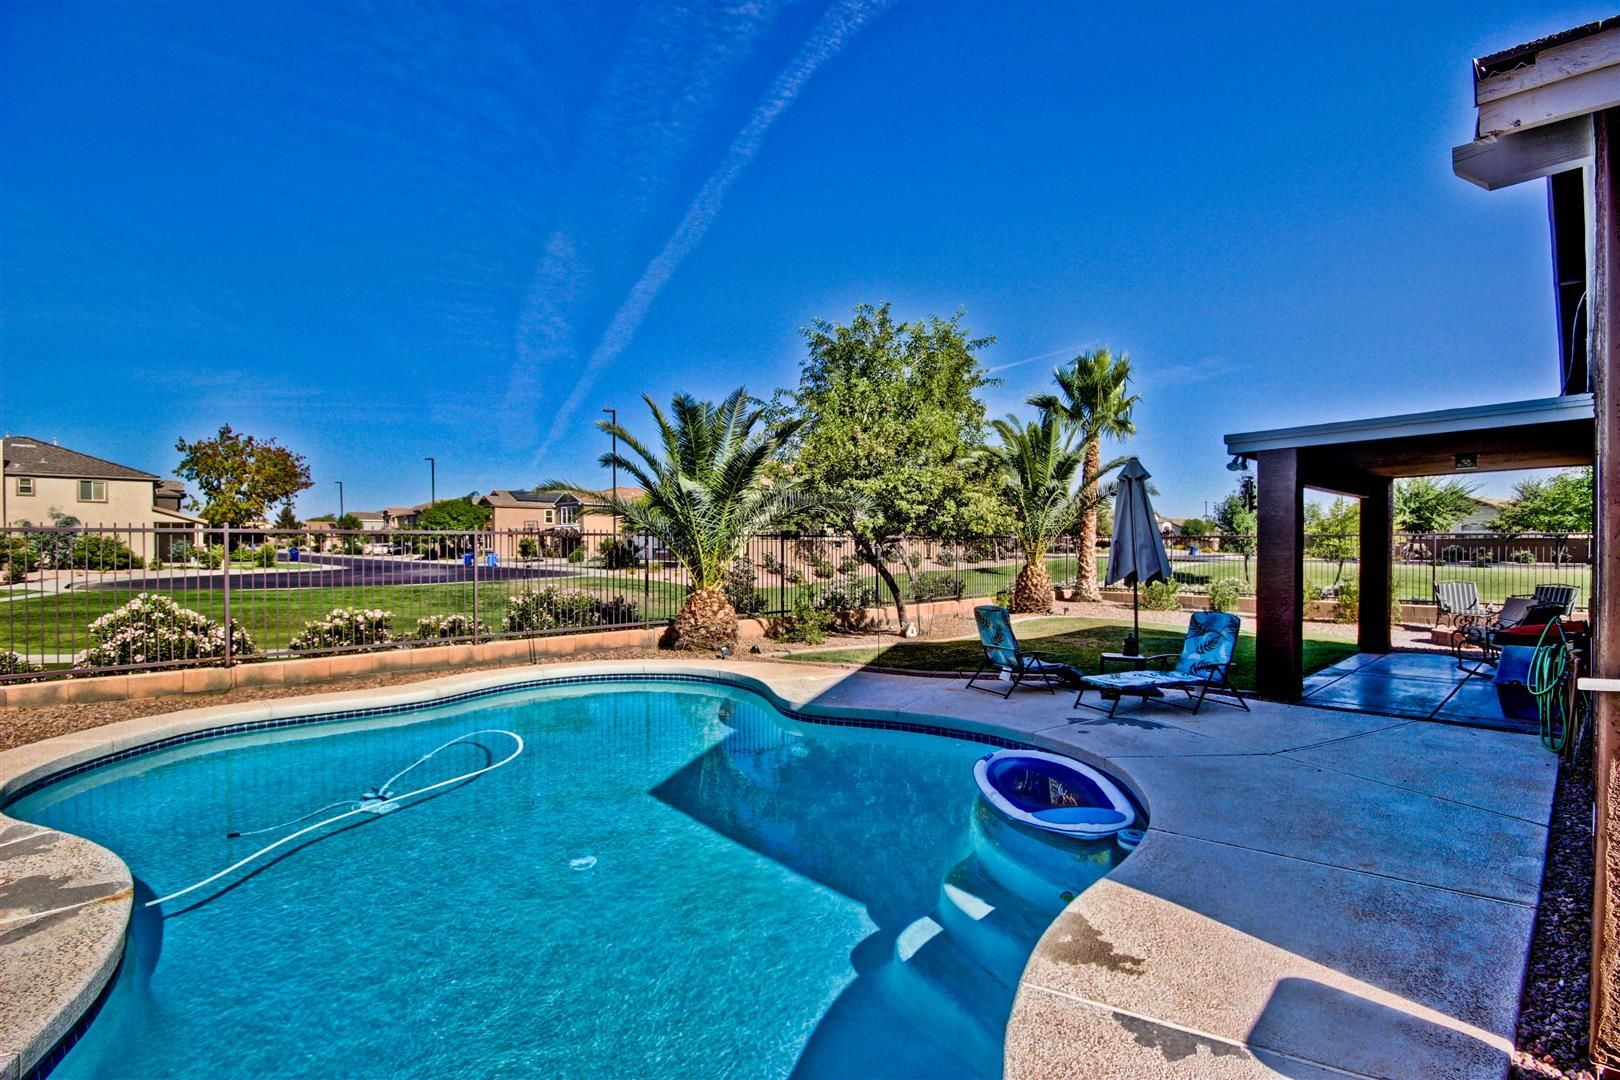 4573 s palomar ct places to visit outdoor palomar